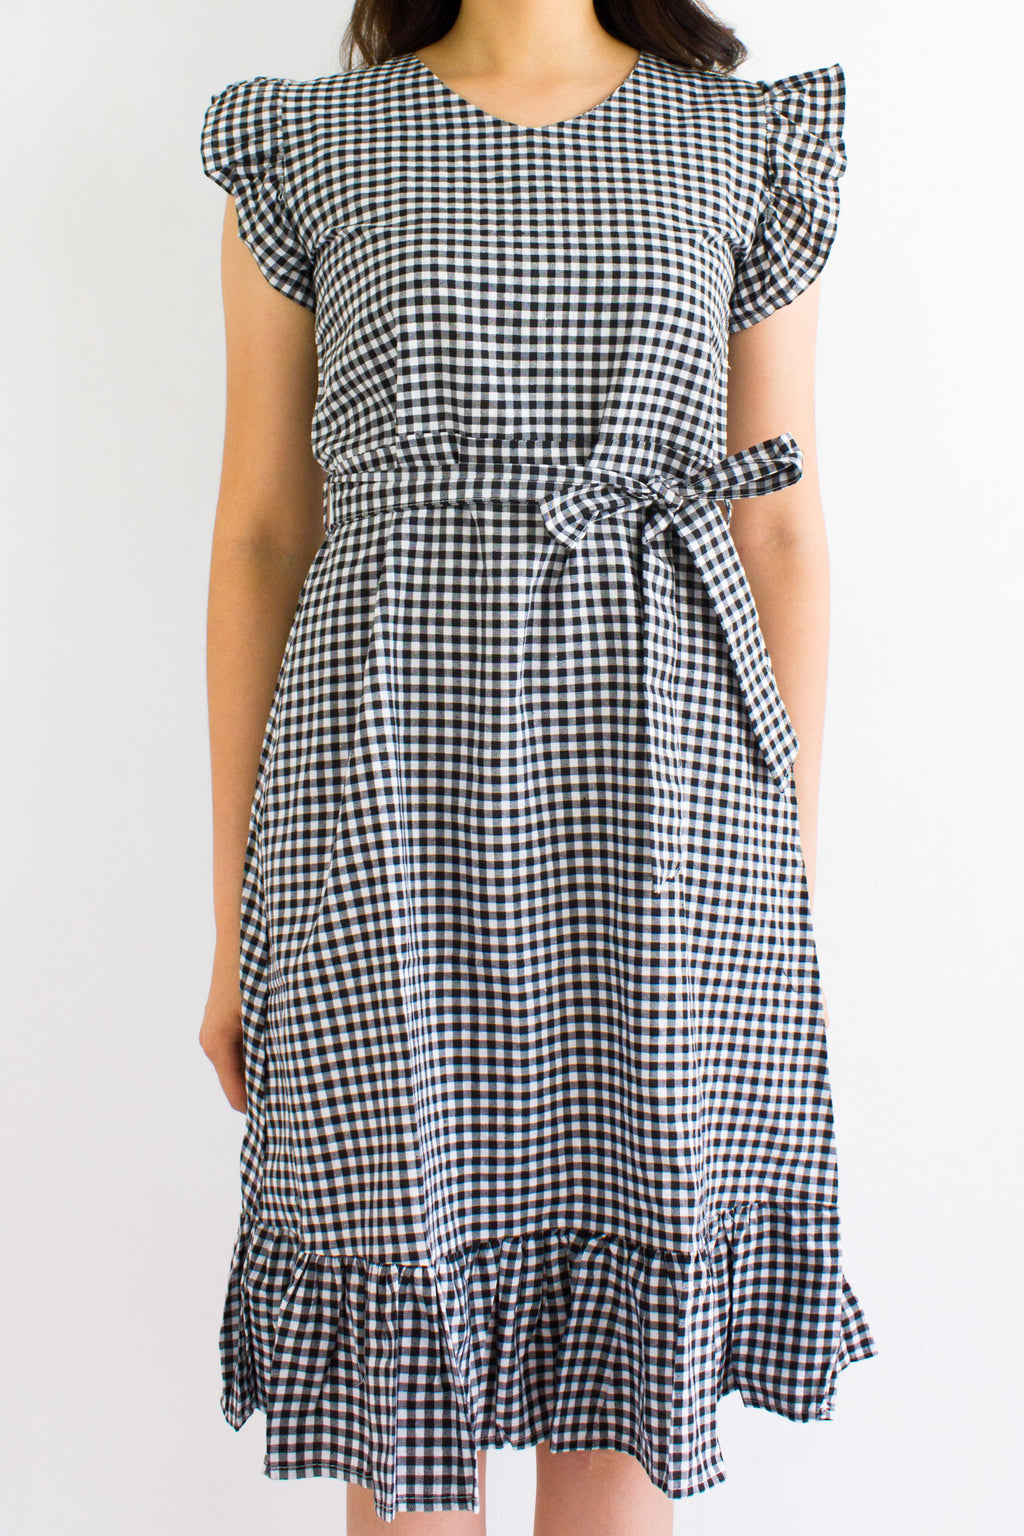 All Checkered Out Midi Dress - DRESSES - Peep Boutique